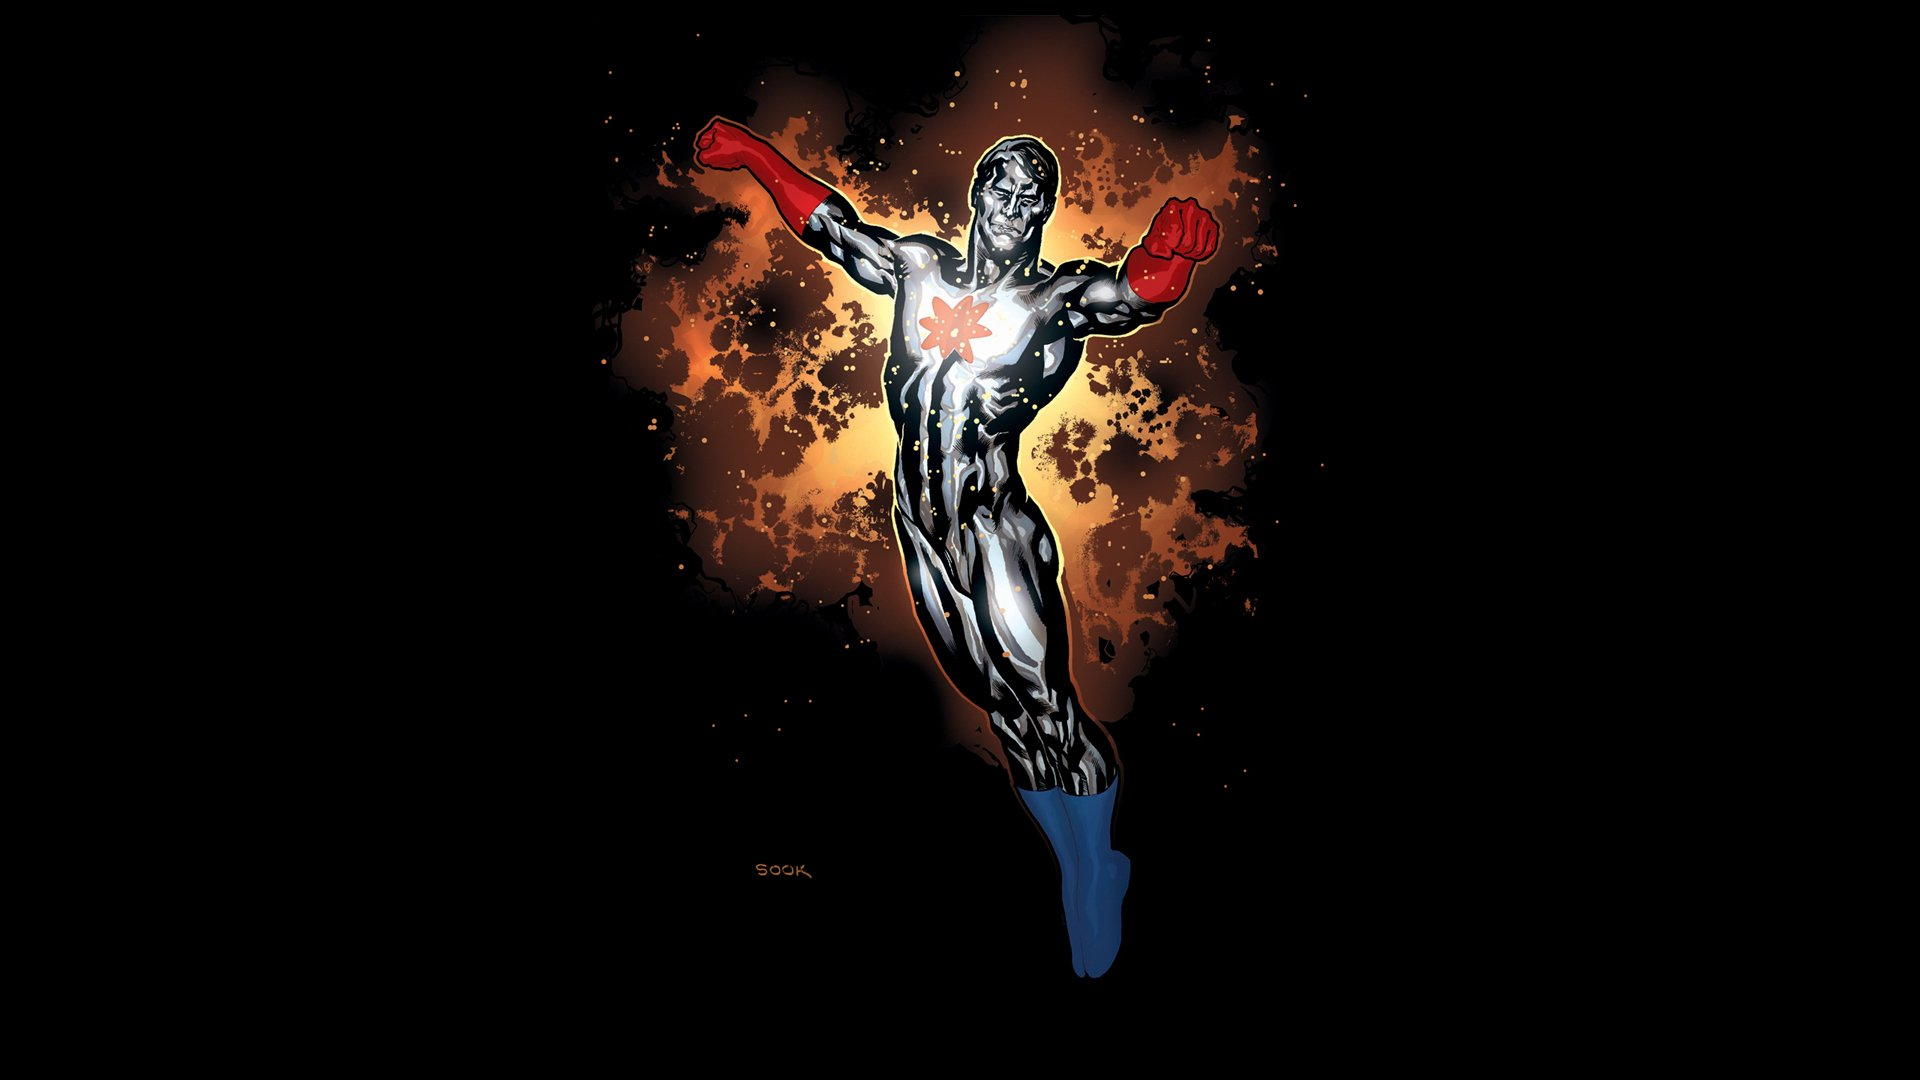 Captain Atom Full Hd Wallpaper And Background Image HD Wallpapers Download Free Images Wallpaper [1000image.com]